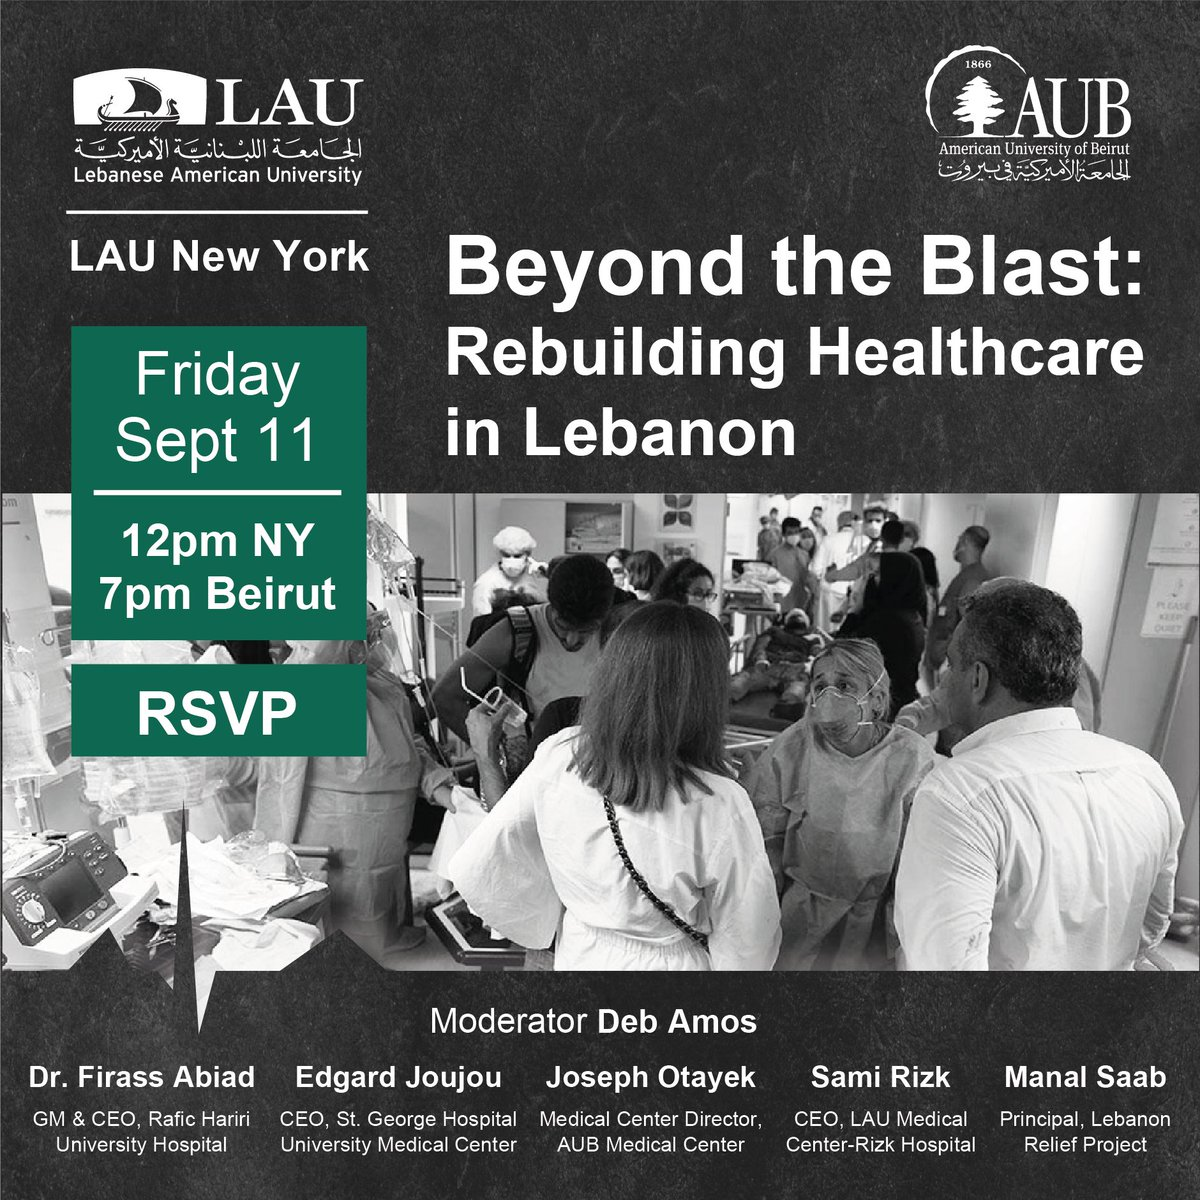 """Beyond the Blast: Rebuilding Healthcare in Lebanon,"" will begin in 20 minutes. Sign up and join us. https://t.co/lCmu6Bb4lB #webinar https://t.co/Ax0eaic7dP"